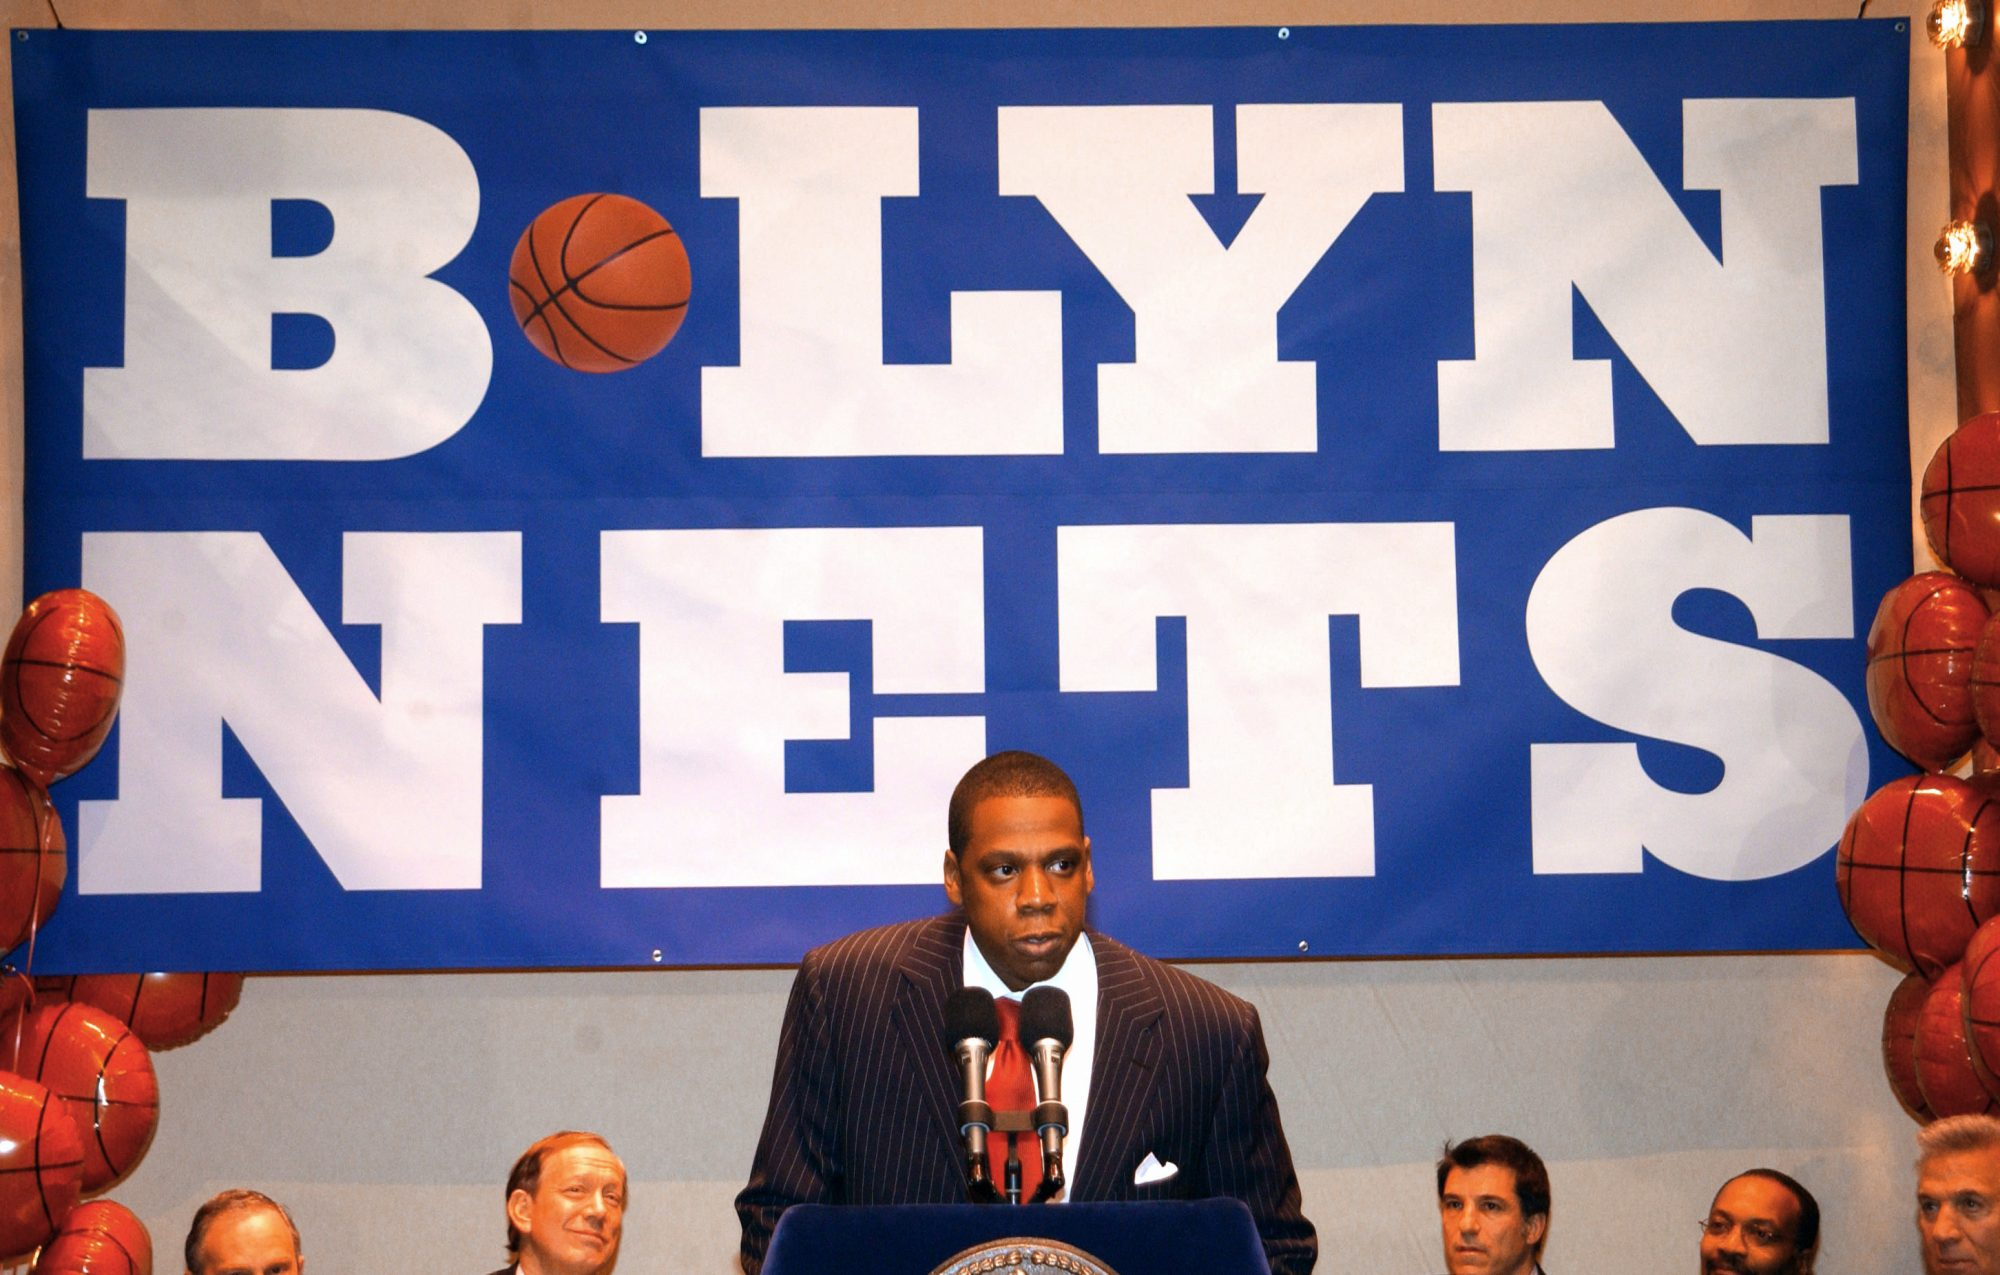 Ratner Buys the Nets